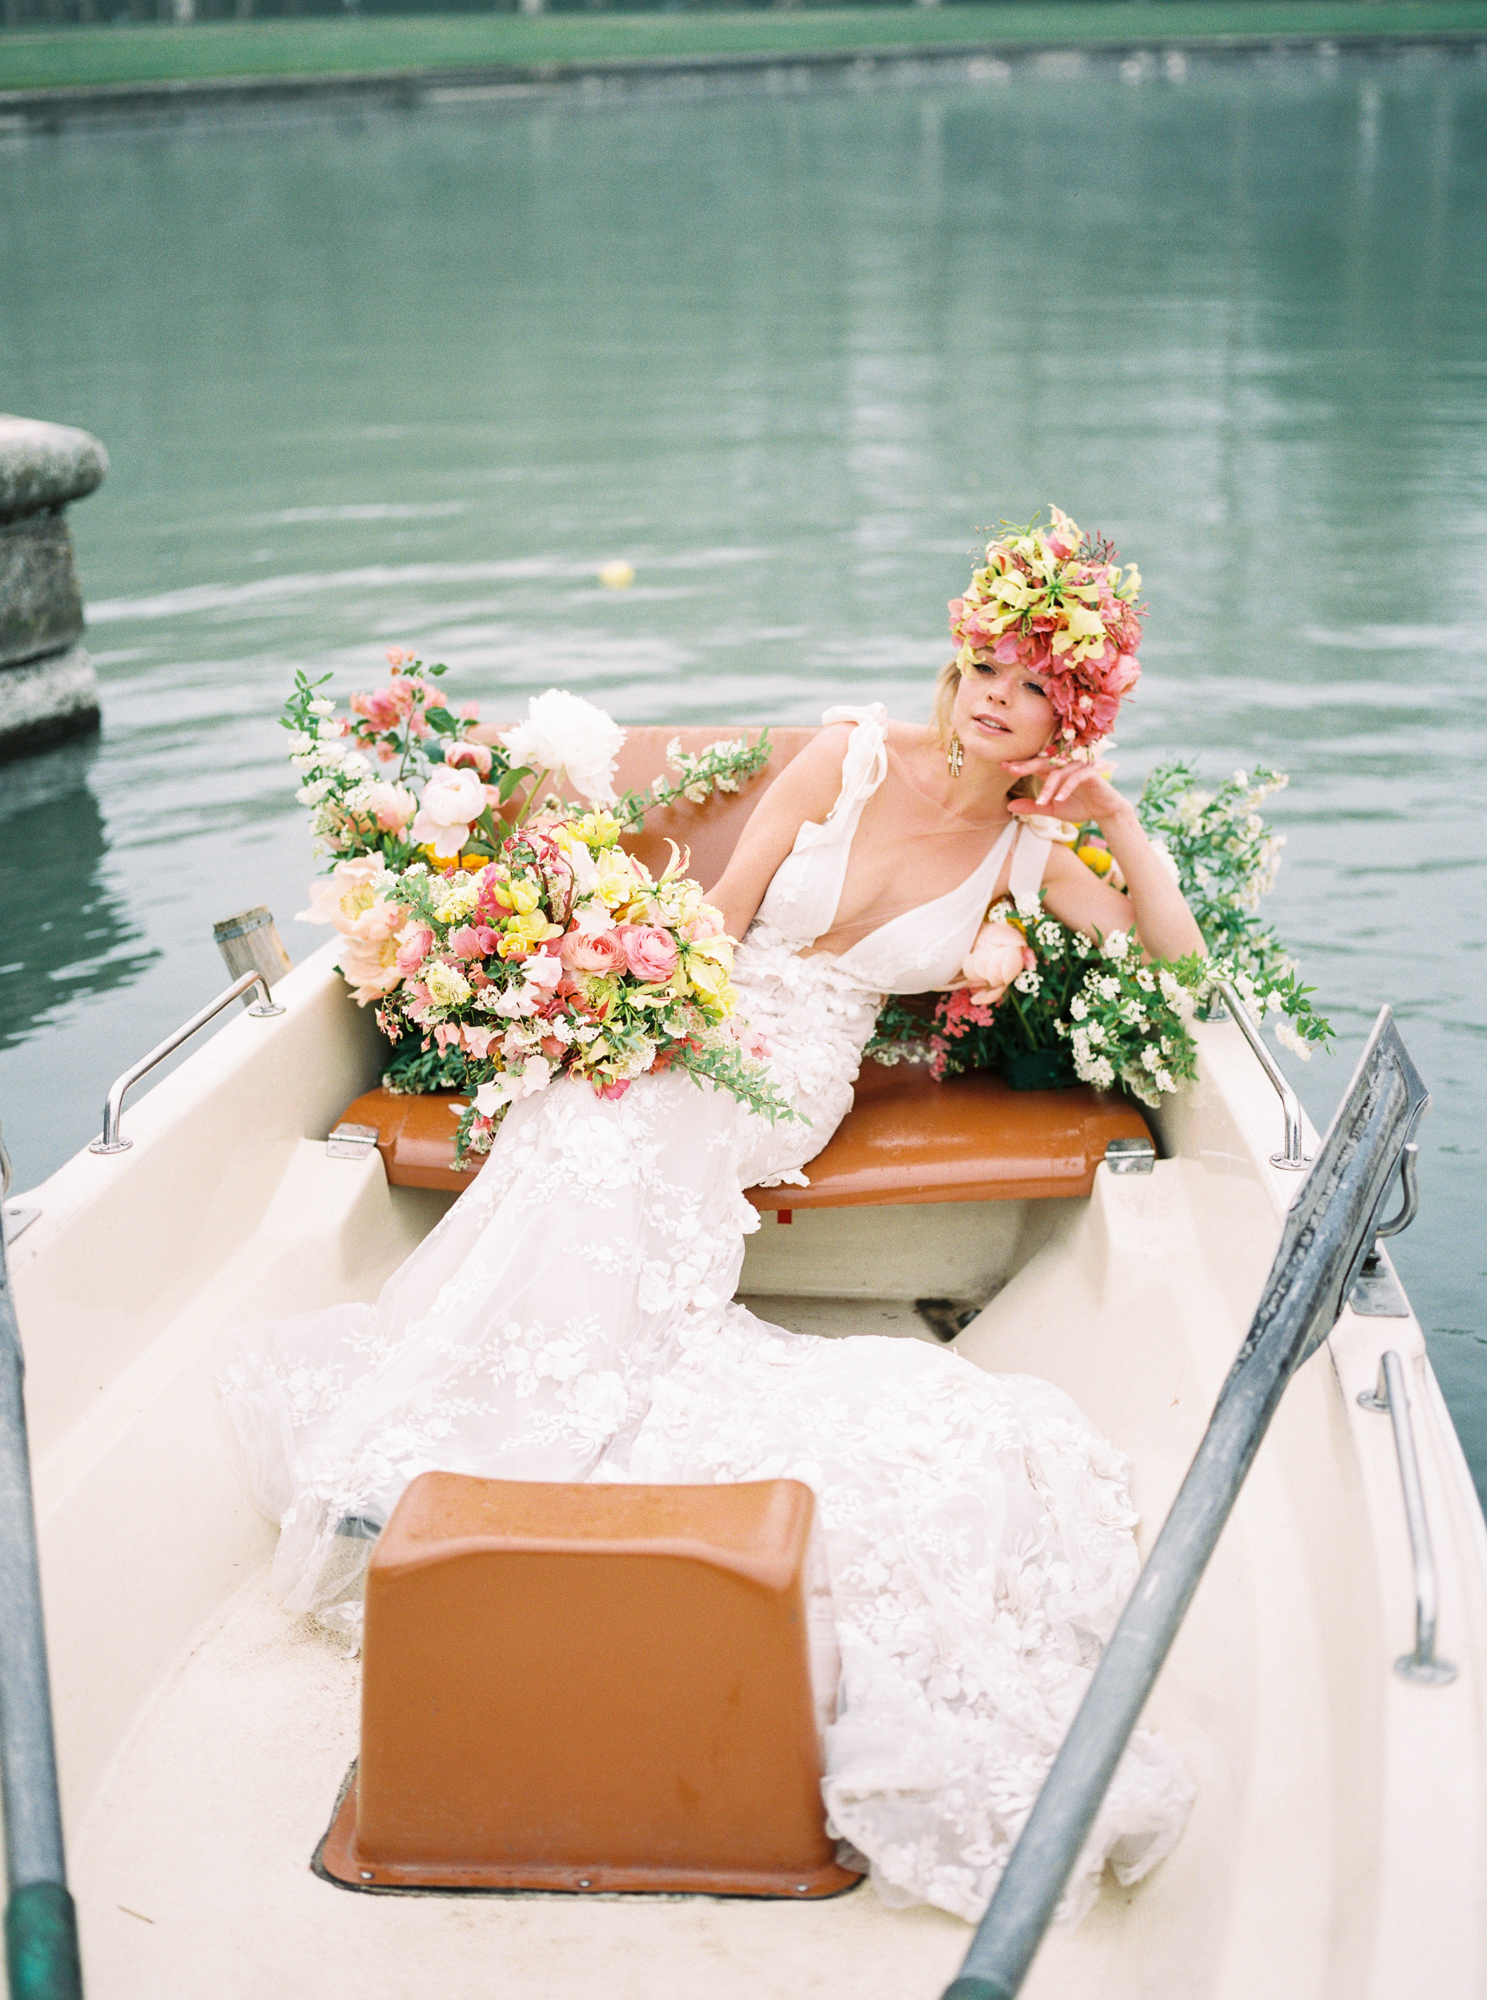 travellur_photoshoot__summer_in_versailles_wedding_flowers_bridal_luxe_shoot_floral_france_boating_luxe.jpg